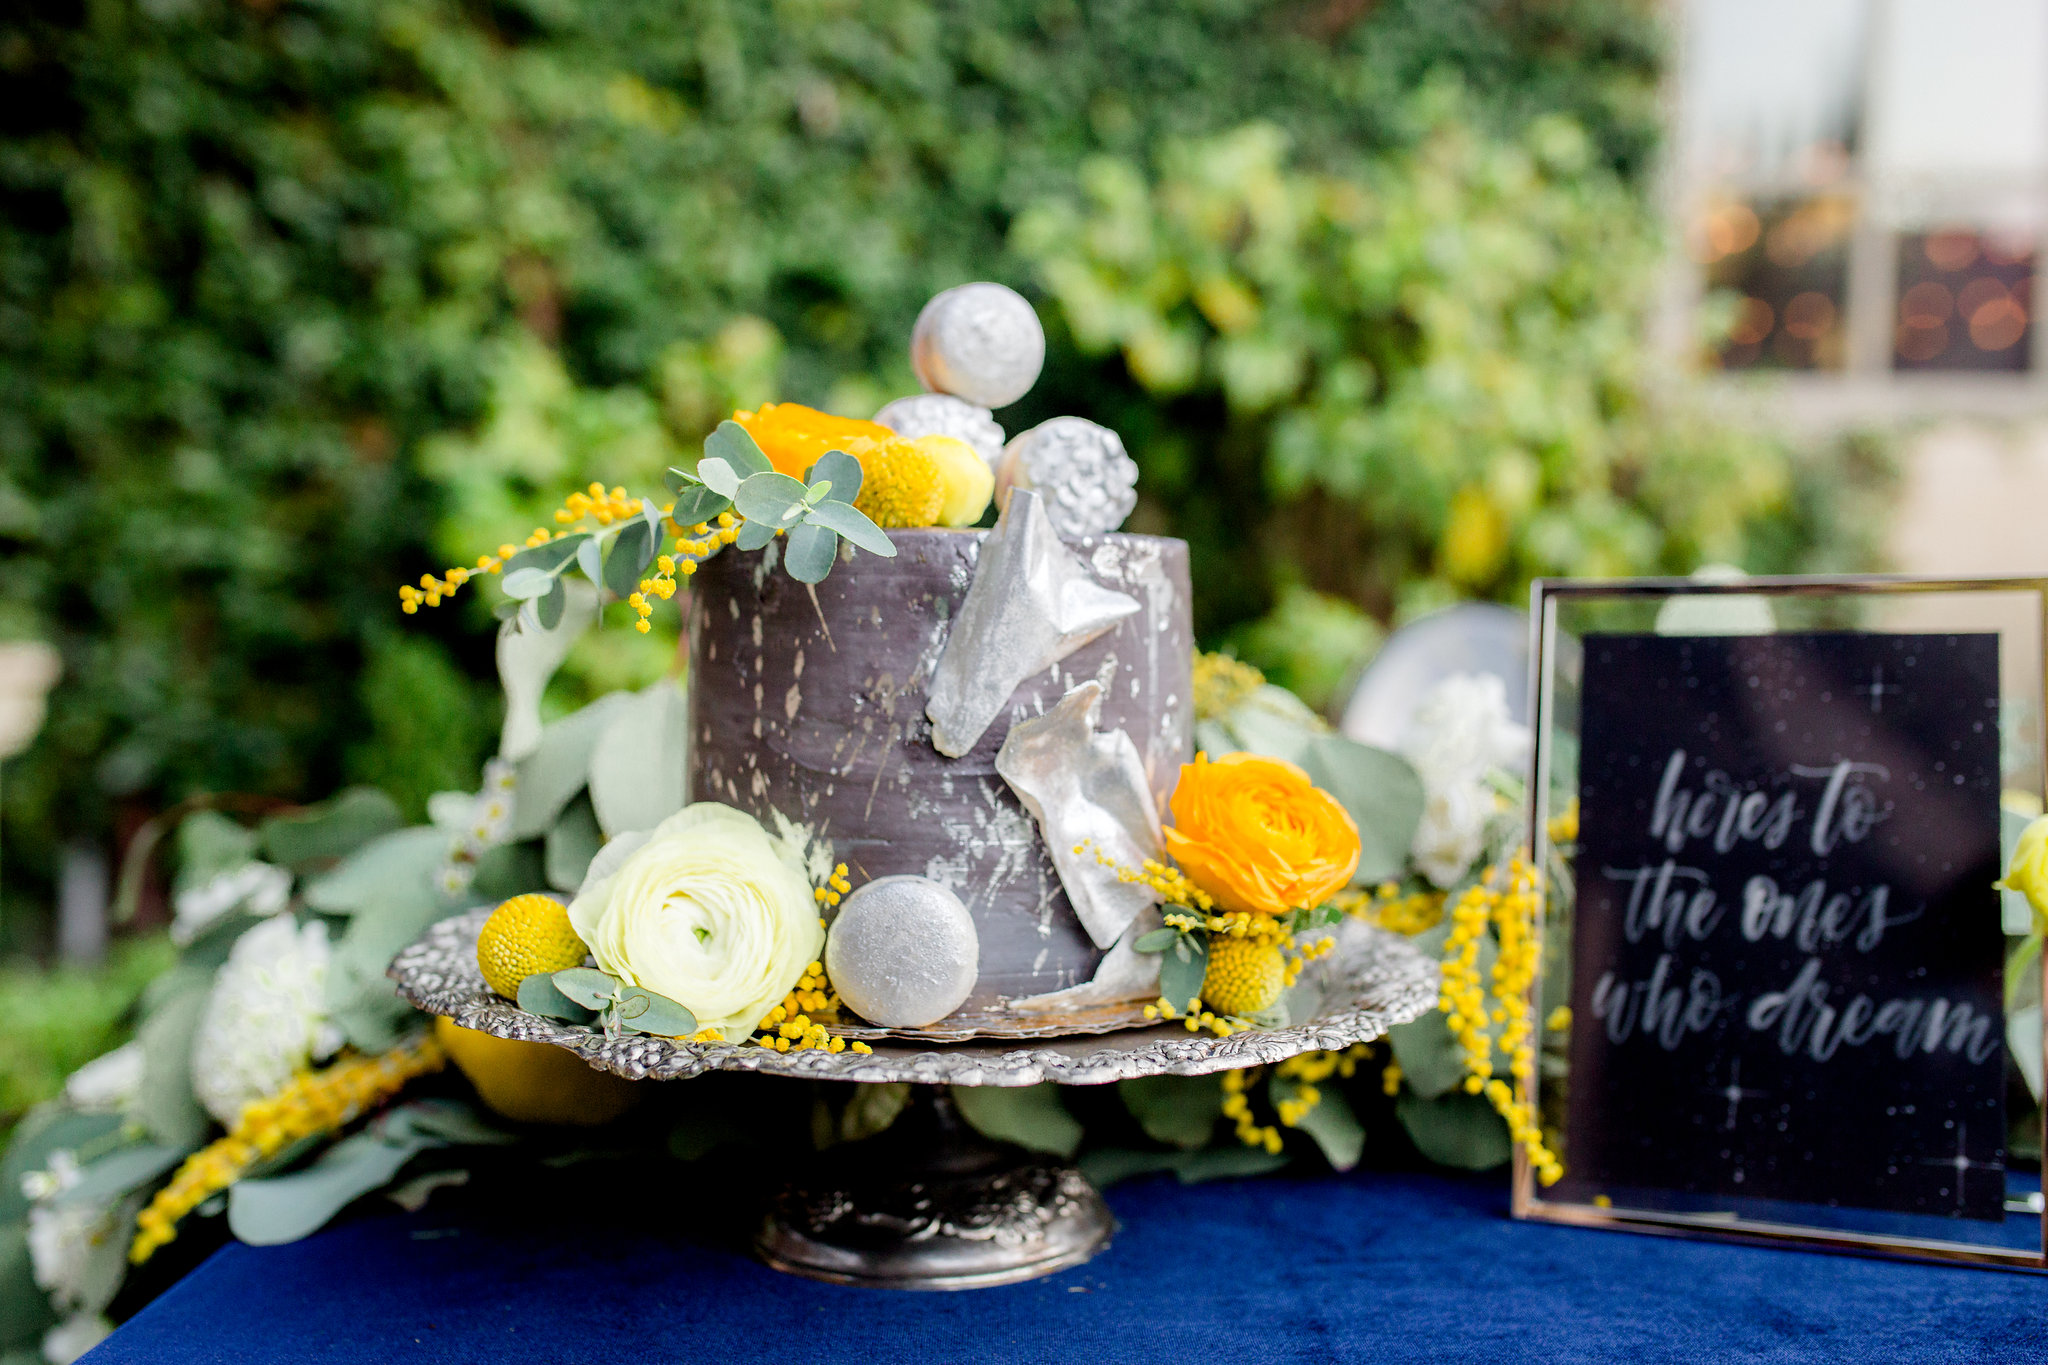 Buttercream frosted cake with silver splatter, silver macarons, silver dusted chocolate shards, and fresh florals. Photo:  Yasmin Roohi